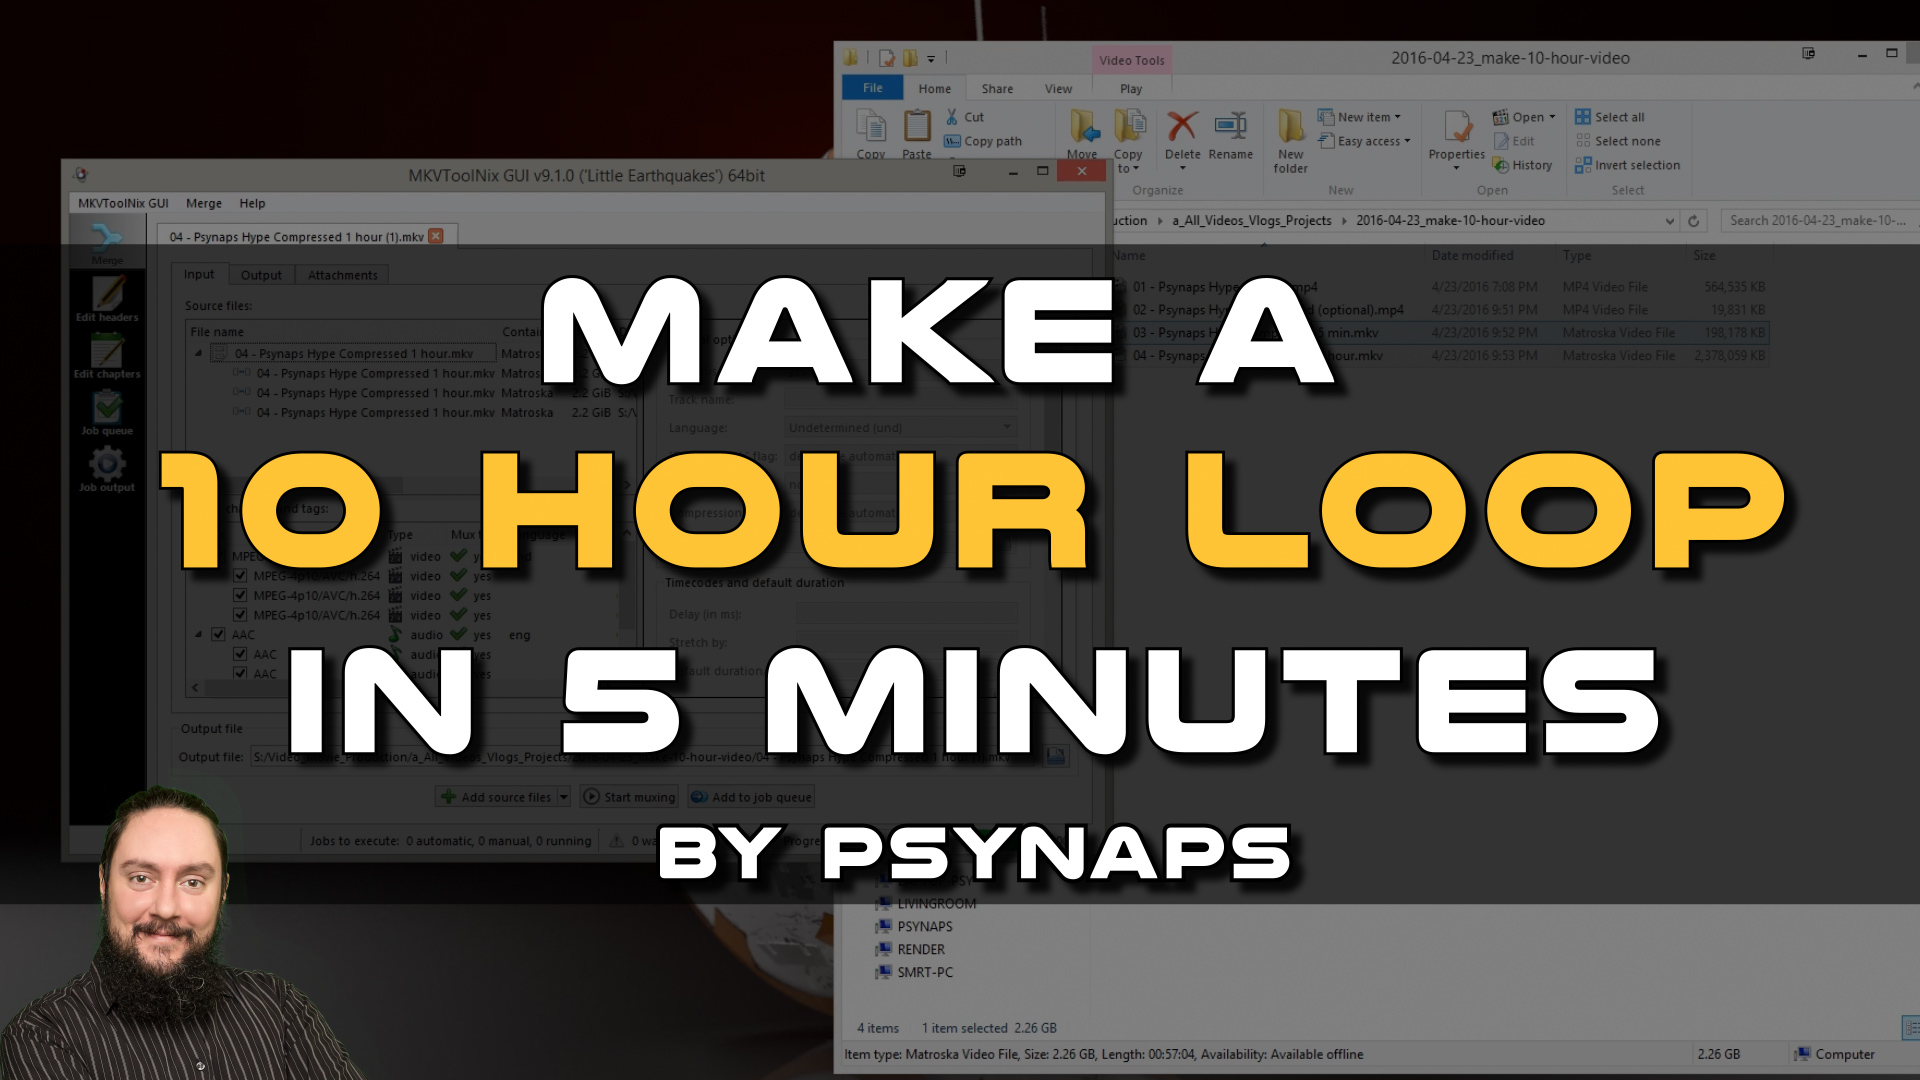 How to Make a 10 Hour Loop on YouTube by Psynaps